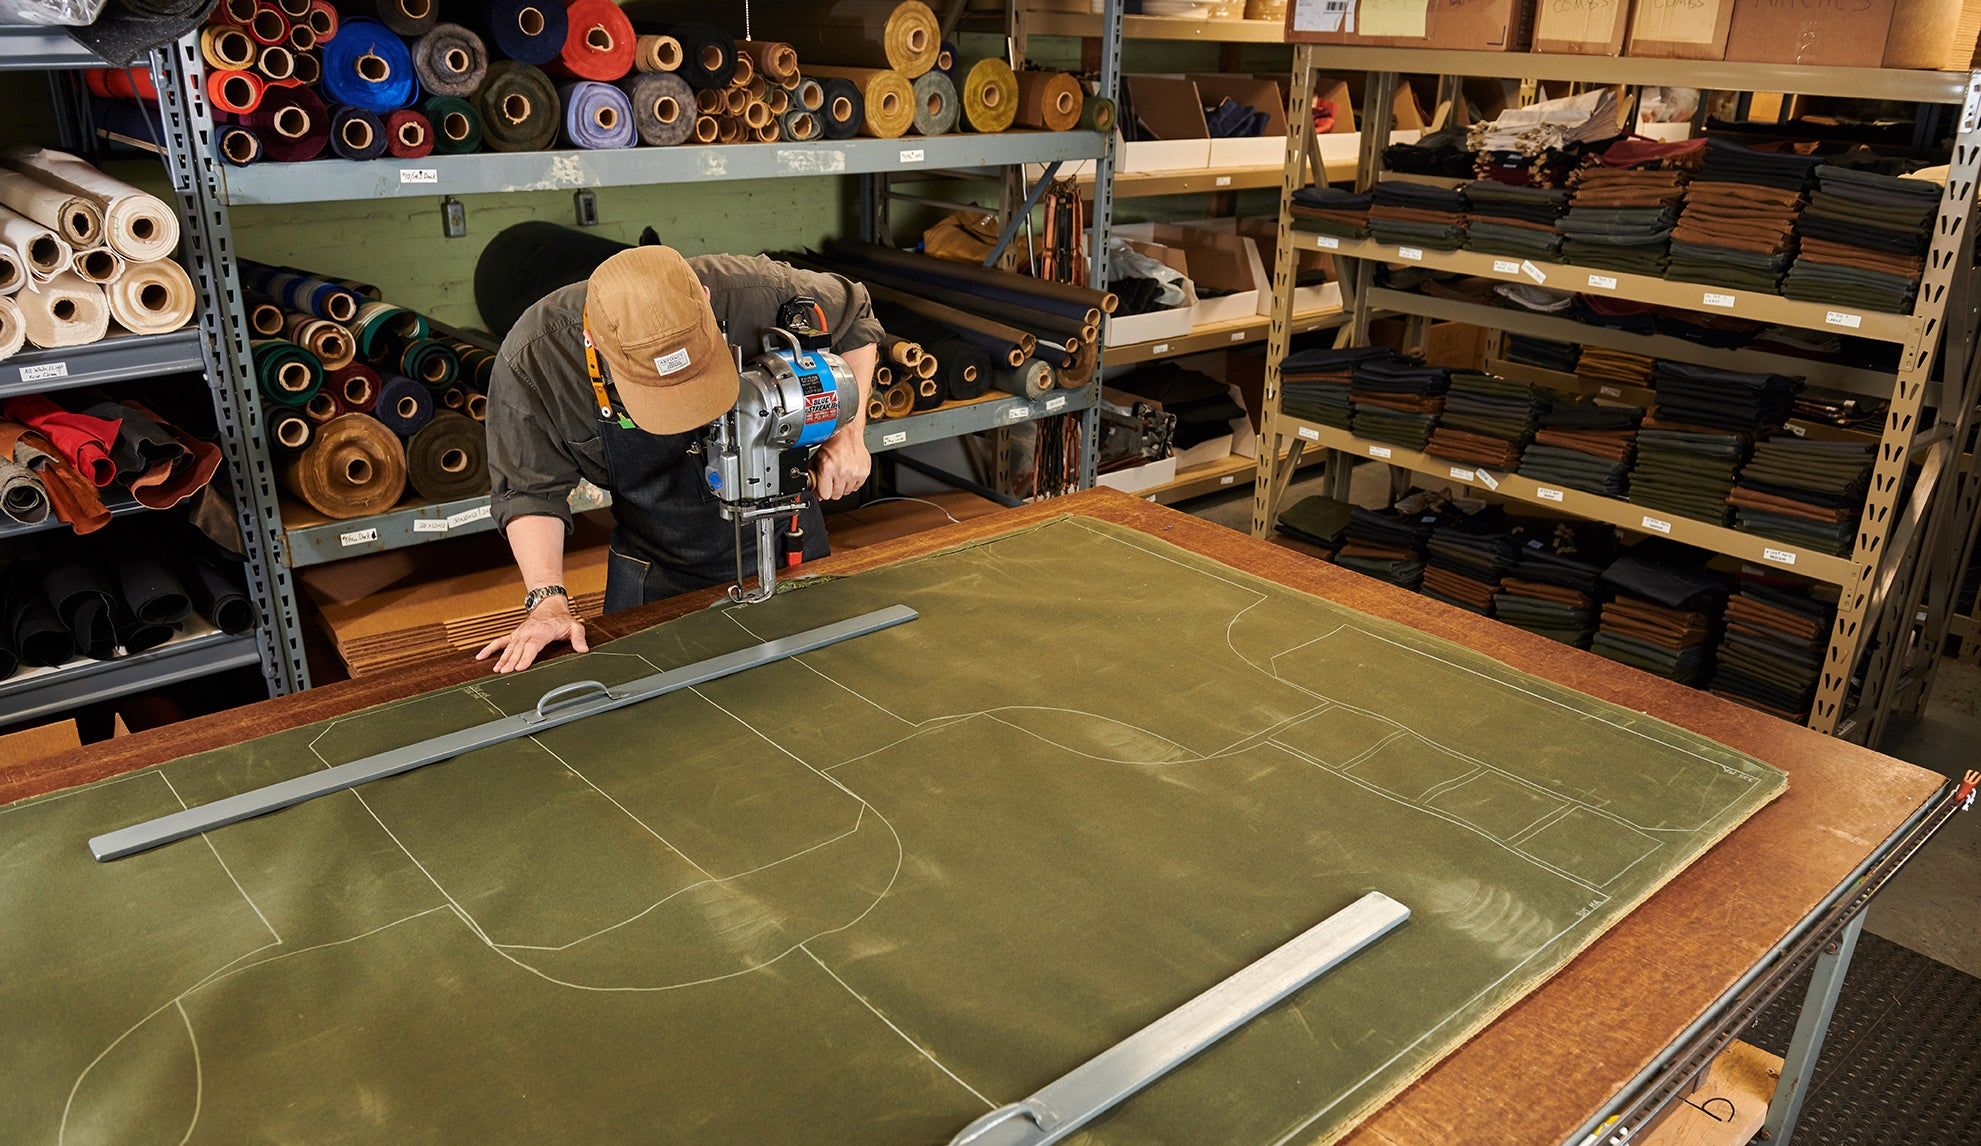 Artifact's Omaha Studio - Cutting Wax Canvas For Aprons